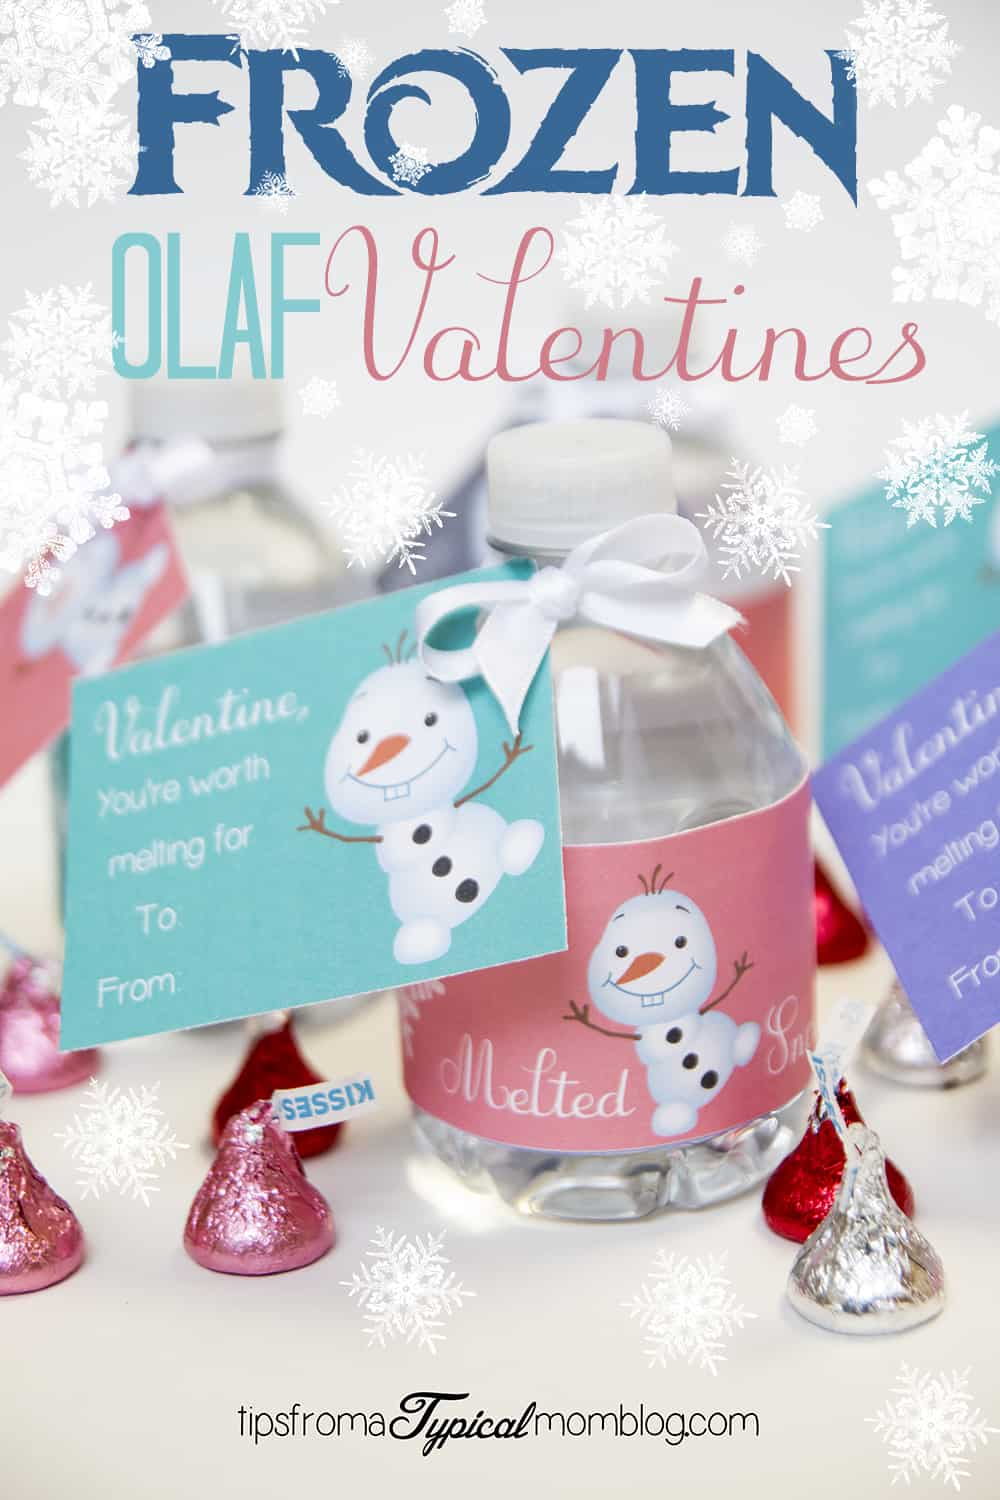 Frozen Youre Worth Melting For Valentines Free Printable